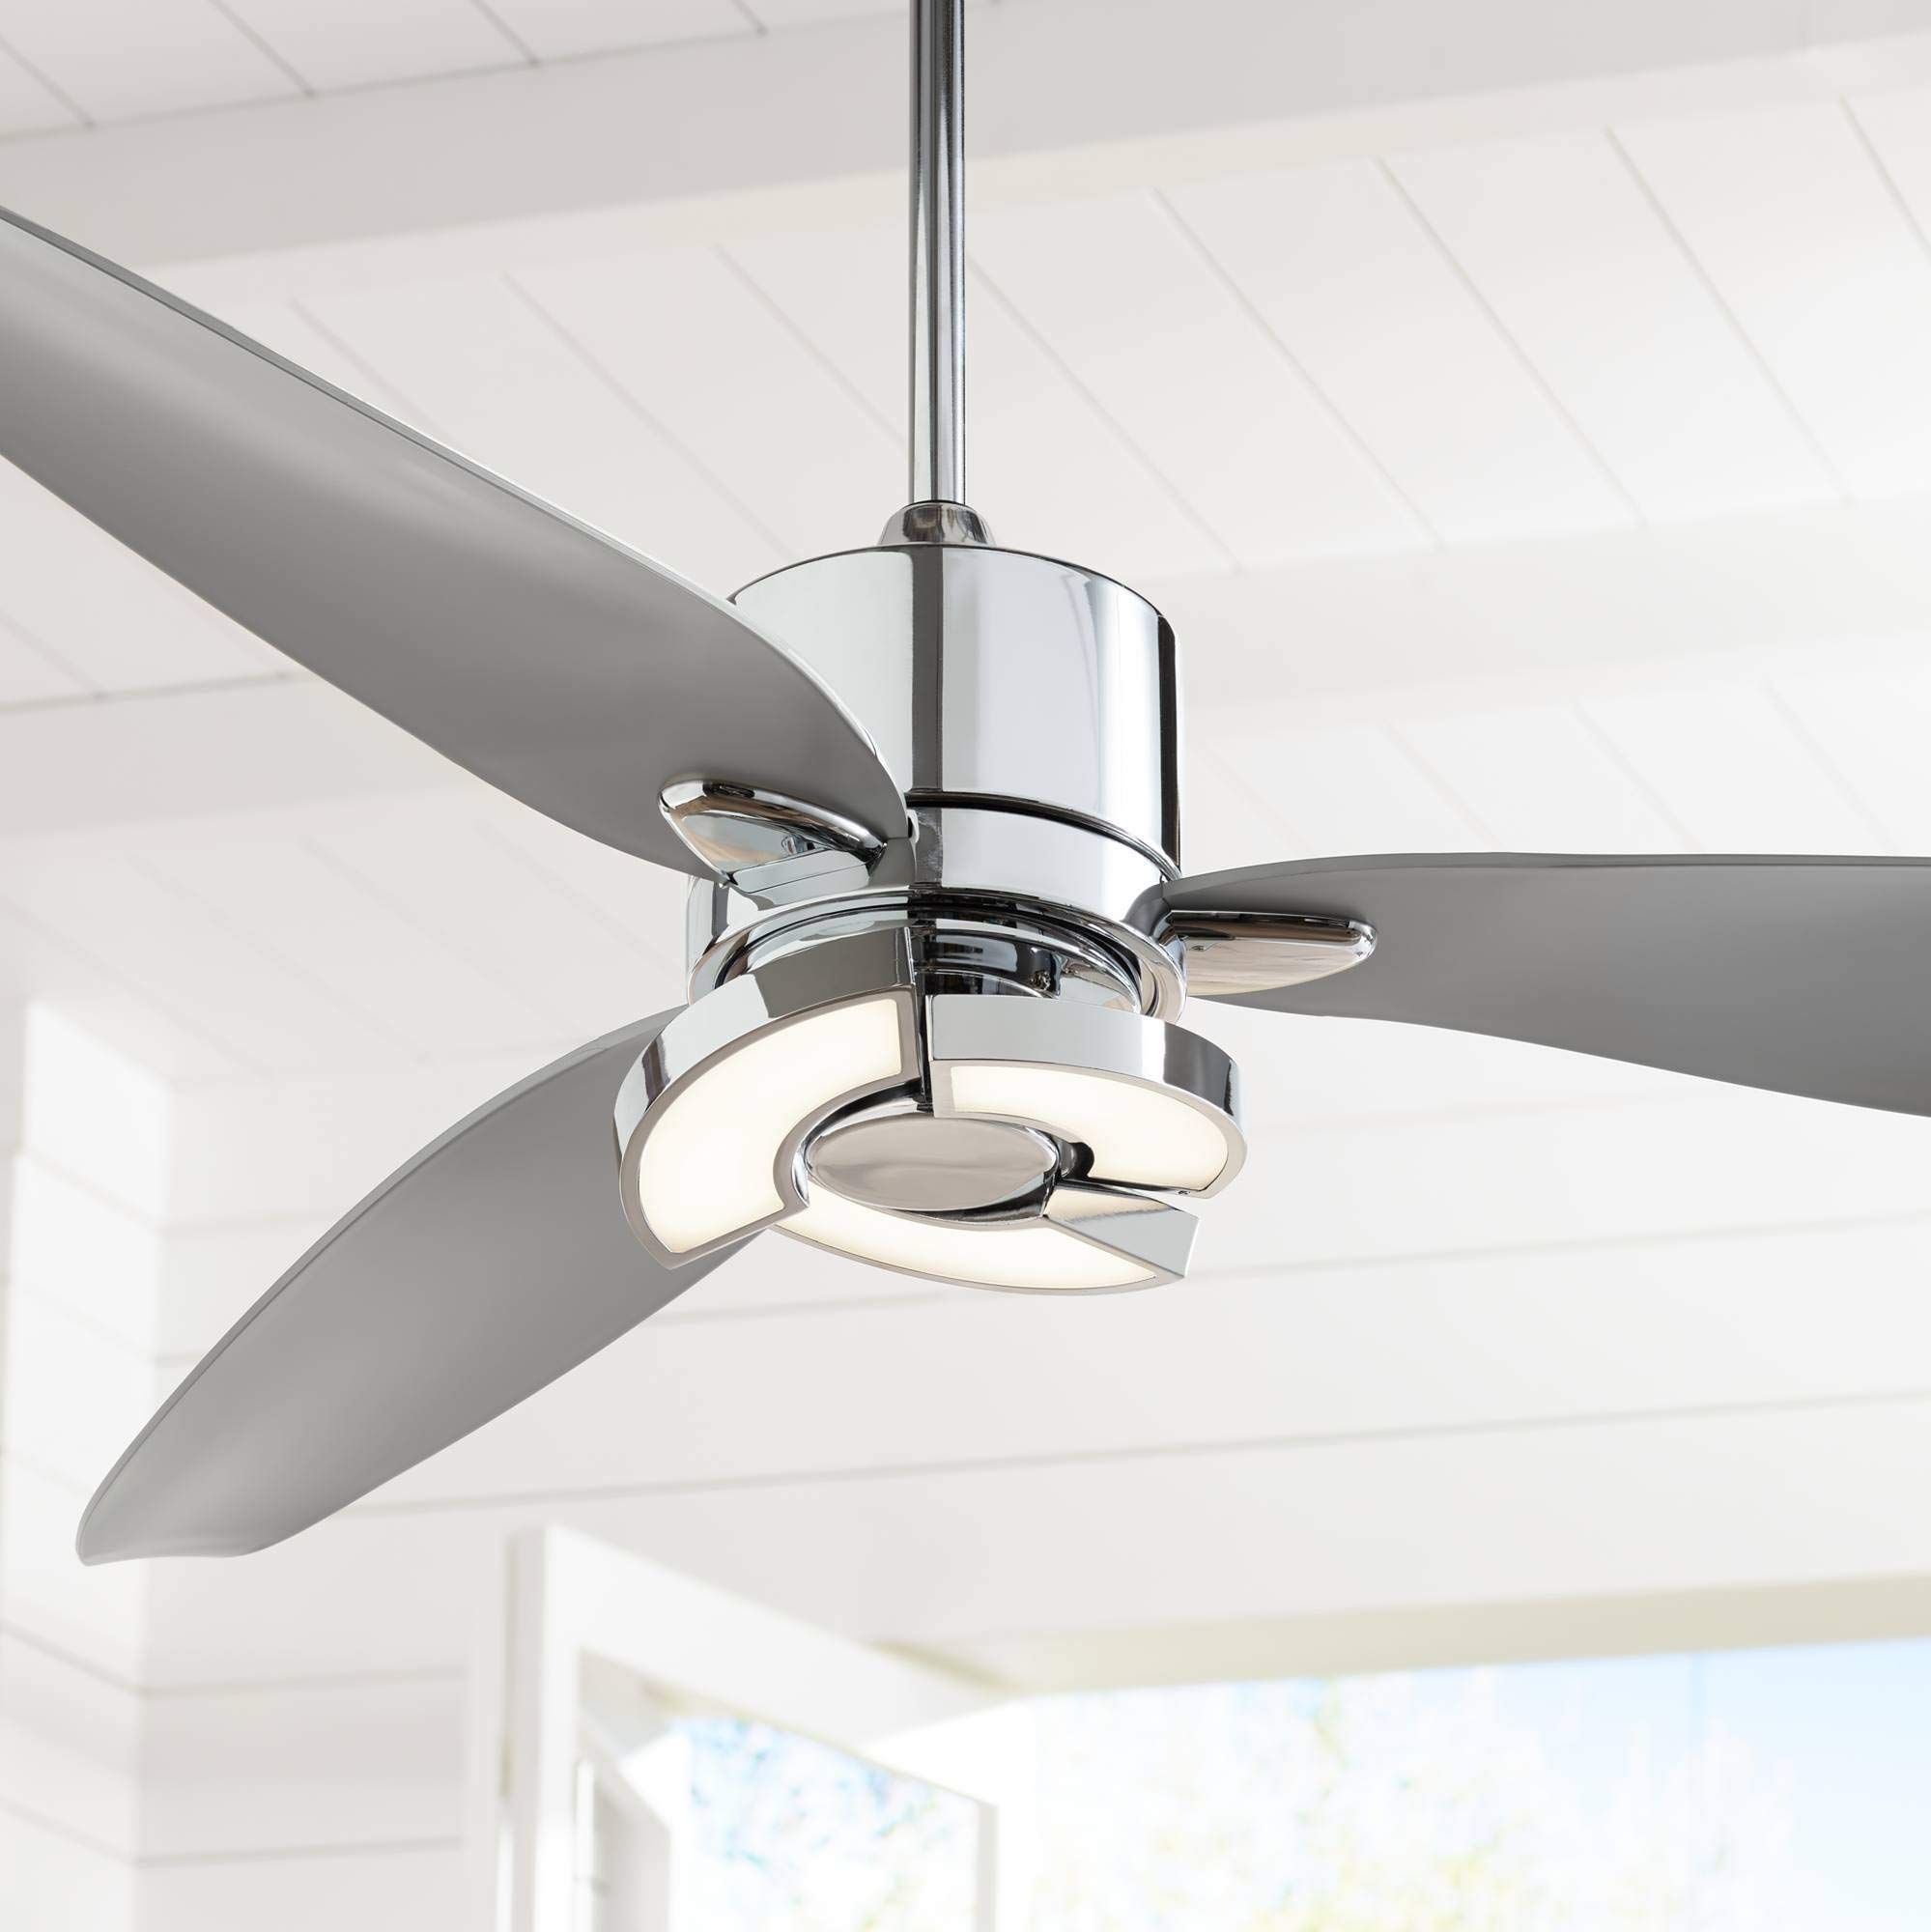 56 Vengeance Modern Ceiling Fan With Light Led Remote Control Chrome Curved Blades For Living Room Kitchen Bedroom